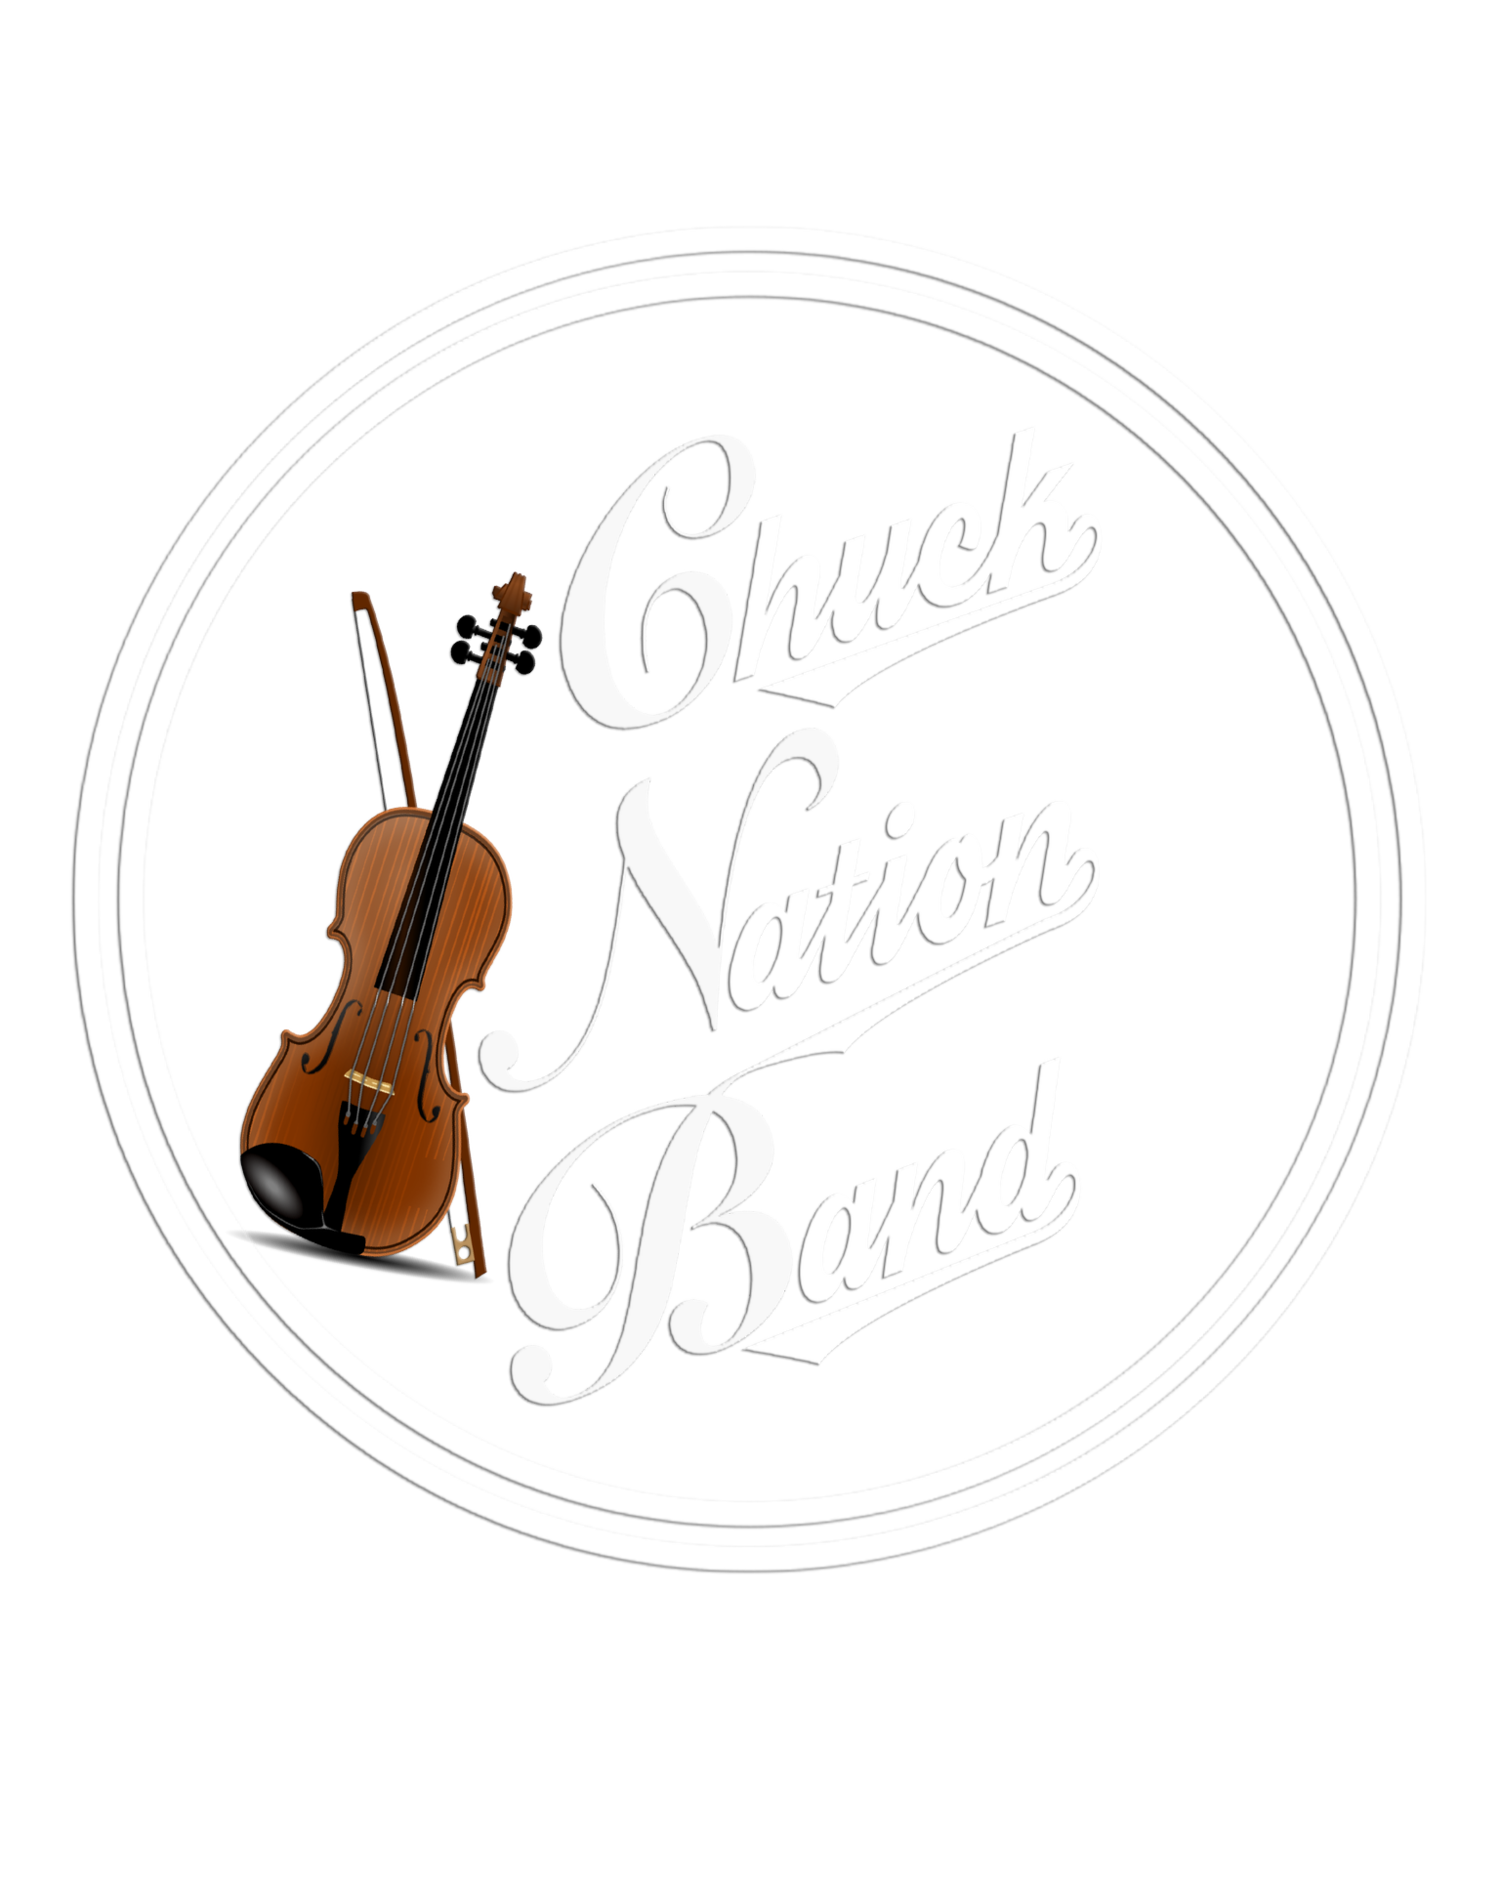 Chuck Nation Band